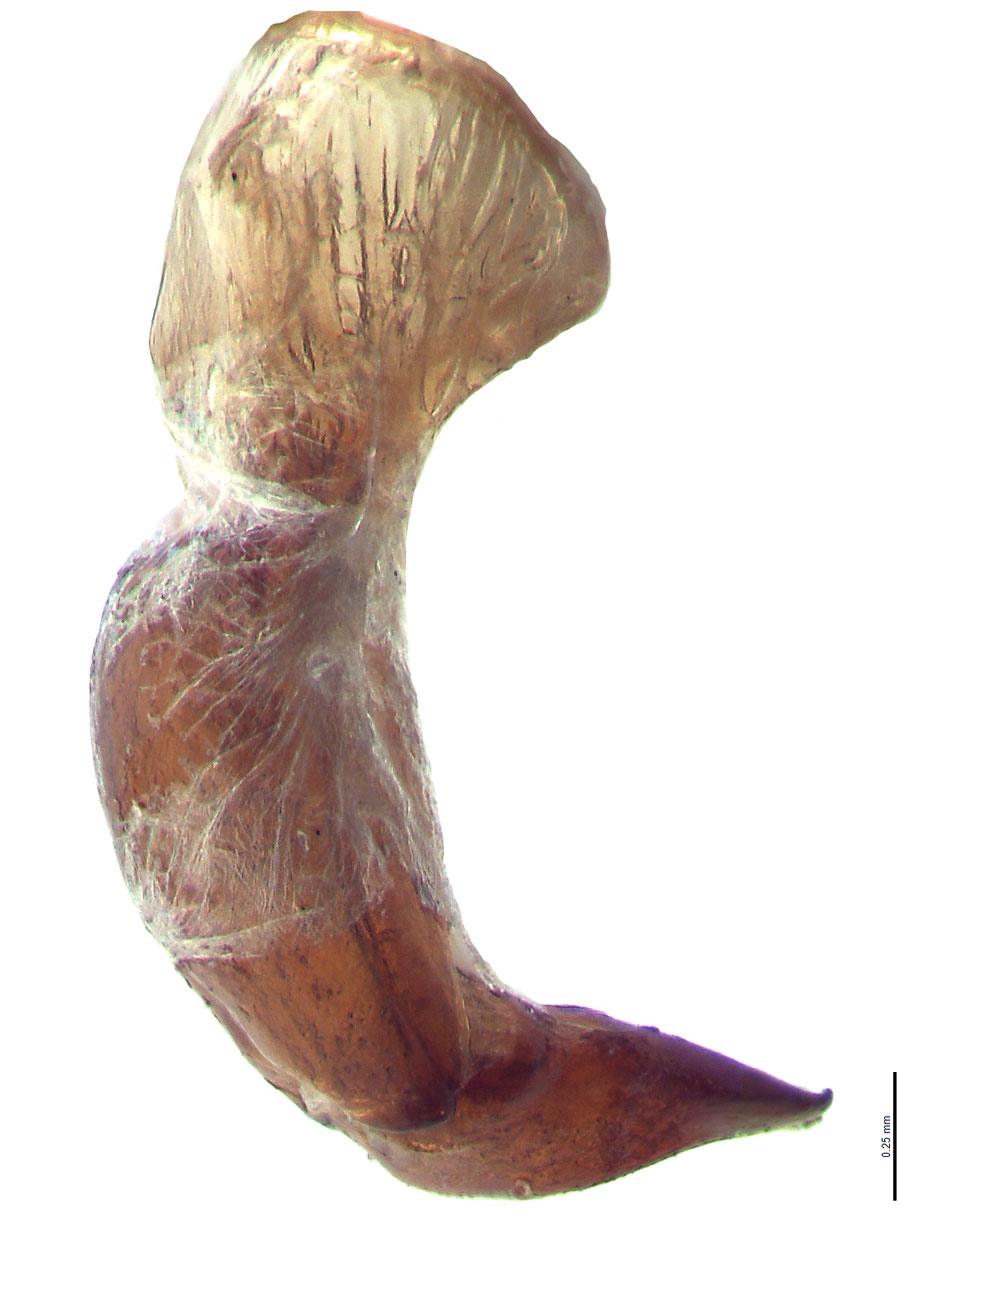 Cyclocephala pasadenae male genitalia, lateral view; photo by E.L. Engasser